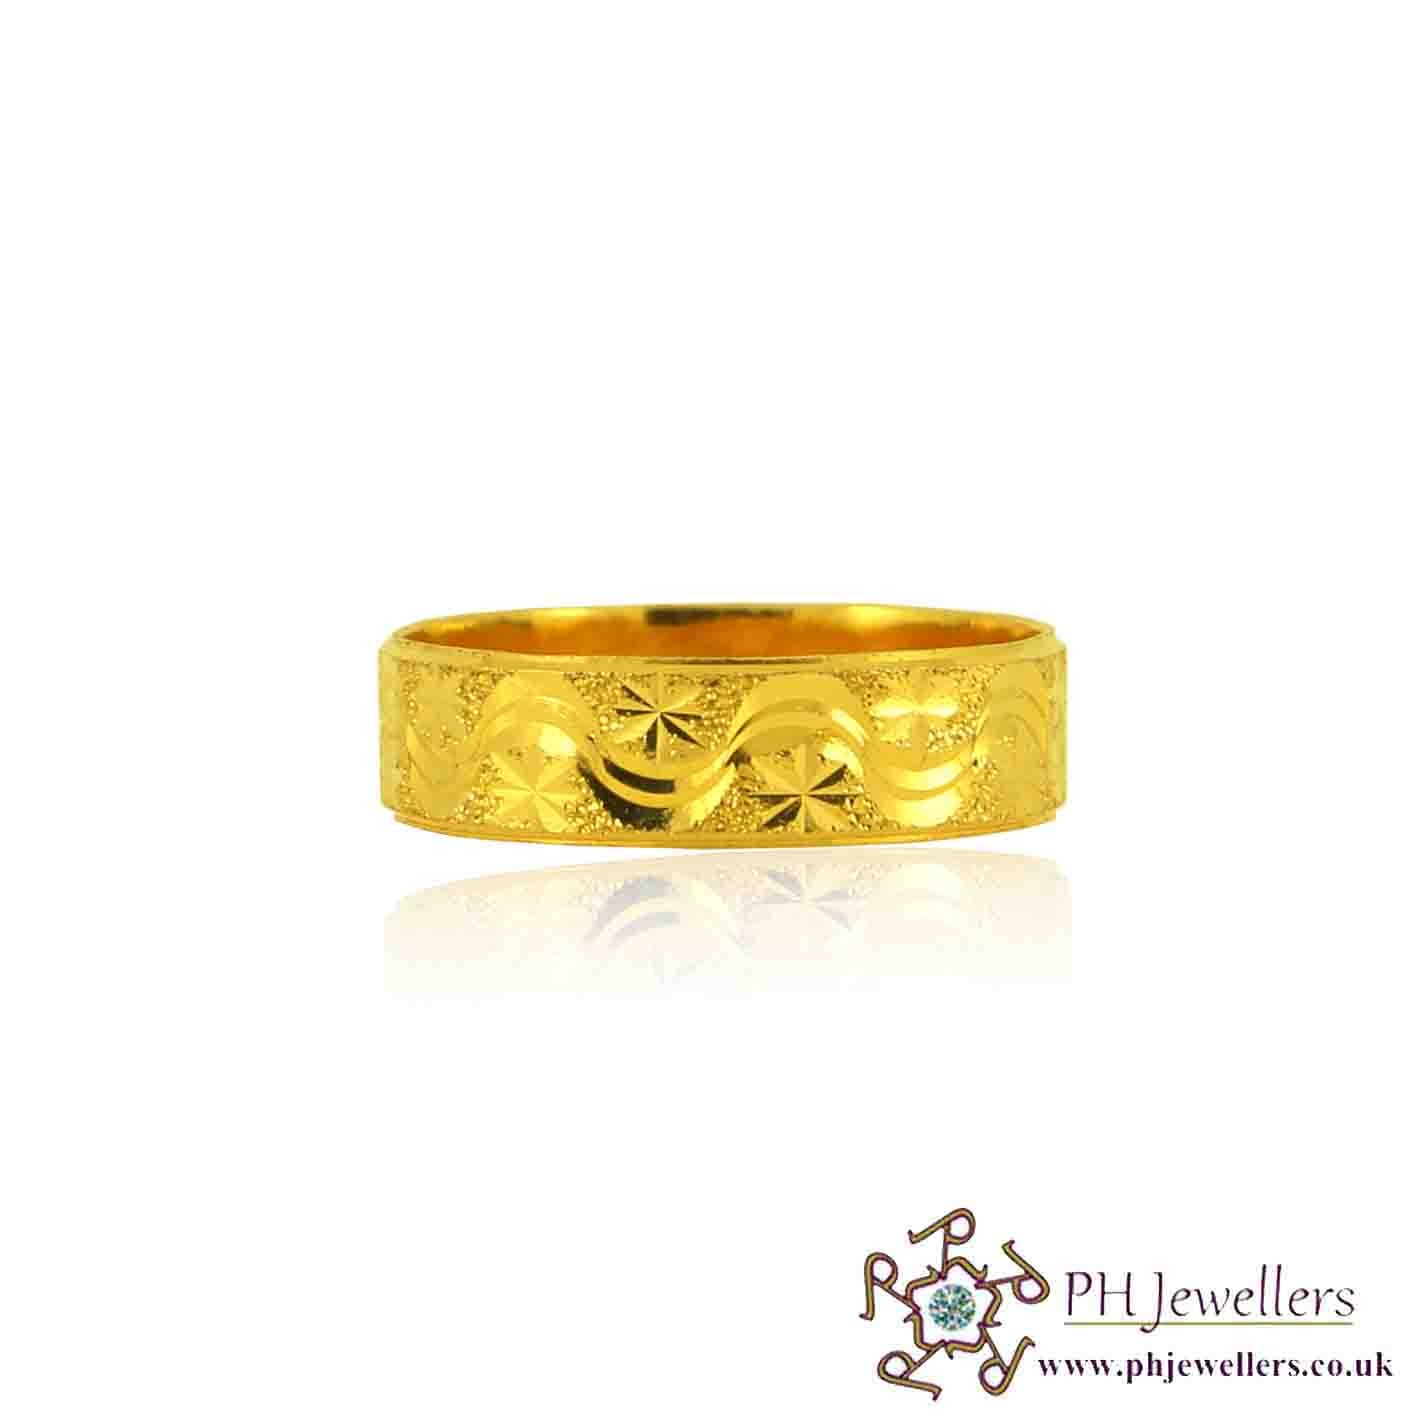 Online Gold Jewellery Gold Jewellery 22ct 916 Yellow Gold Hallmark